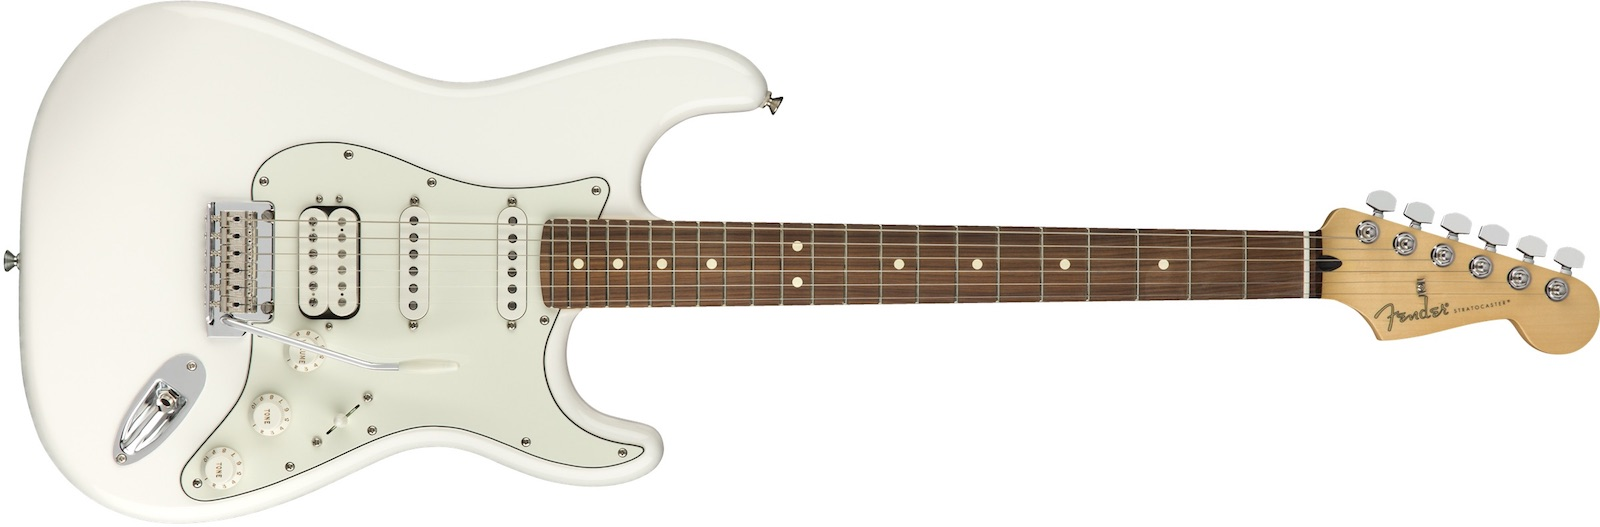 【新品】Fender Player Stratocaster HSS Pau Ferro Fingerboard ~Polar White~【お取り寄せ】【送料無料】【池袋店】